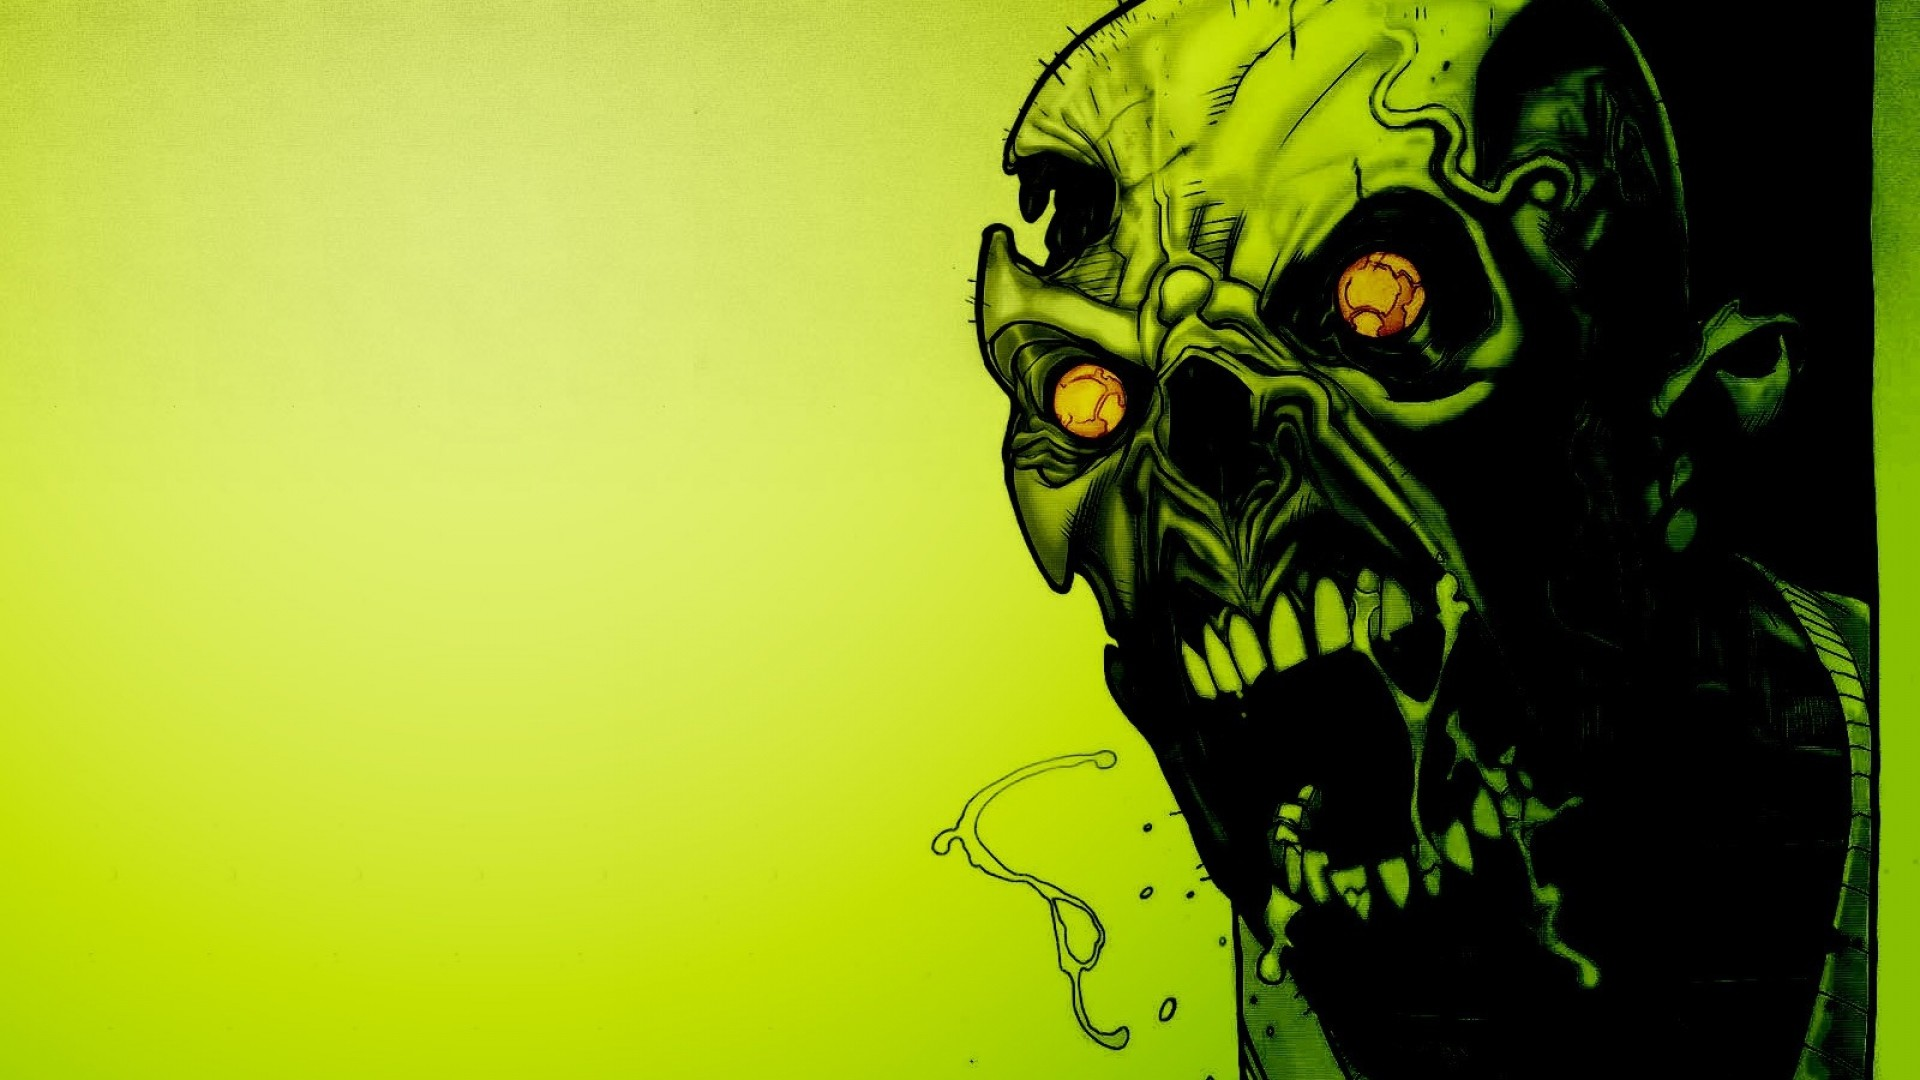 1920x1080 Preview Wallpaper Zombies Scary Green Eyes Blood